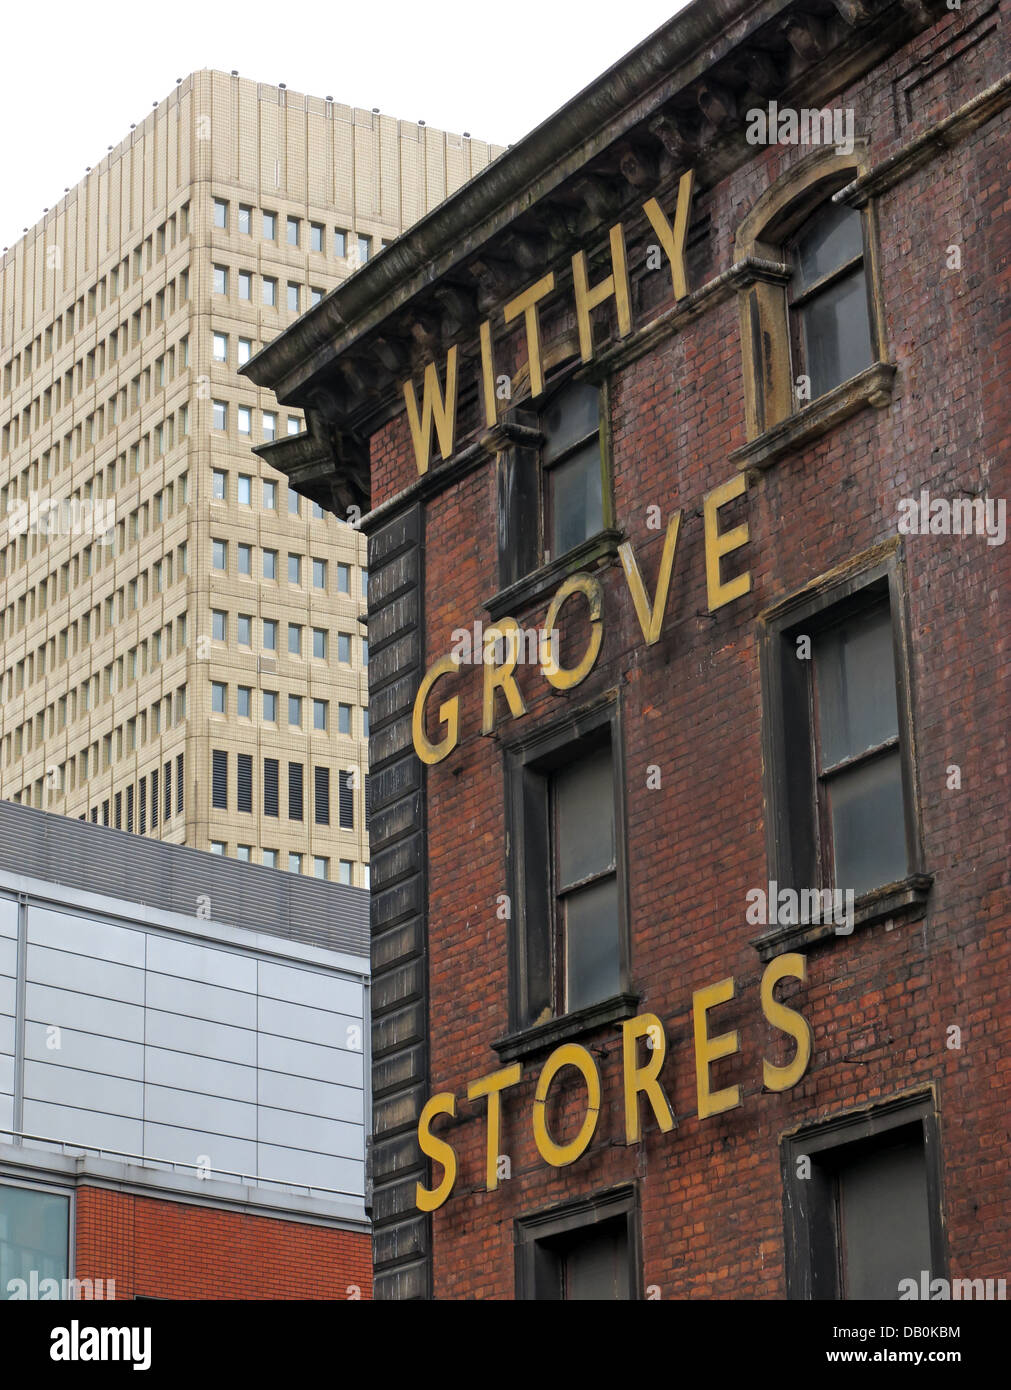 The,old,withy,Grove,Stores,victorian,building,in,Shudehill,Manchester,City,Centre,with,the,1970s,Arndale,shopping,precinct,classic,mancunian,industrial,warehouse,cotton,Withy,Grove,Stores,Ltd,Withy,Grove,Stores,Ltd,is,situated,on,Withy,Grove,in,Manchester,city,centre,and,supplies,commercial,safes,gotonysmith,WithyGrove,fire,protection,Established,in,1850,old,firm,firms,family,housed,in,a,fantastic,old,building,business,classic,King,Mancester,Buy Pictures of,Buy Images Of